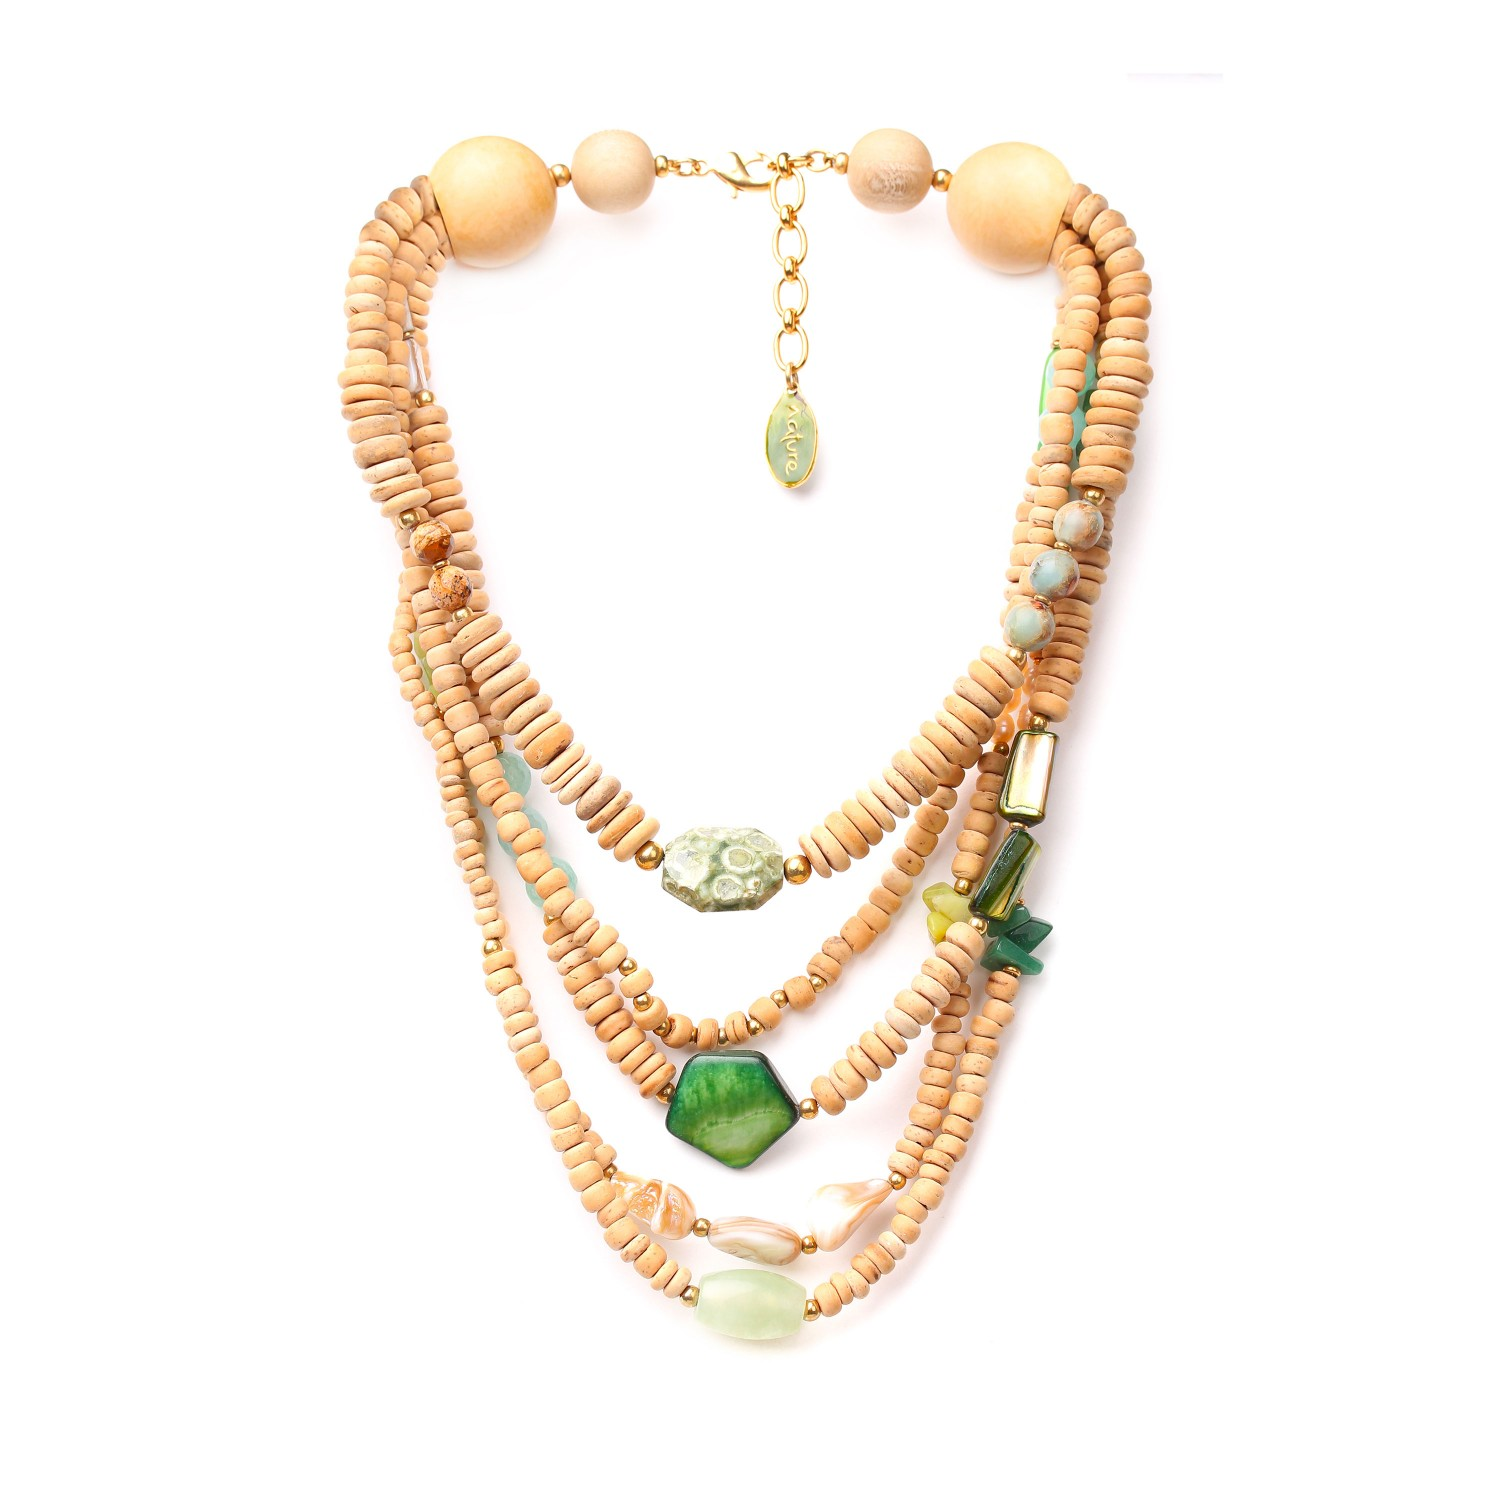 DANUBE 5-row necklace